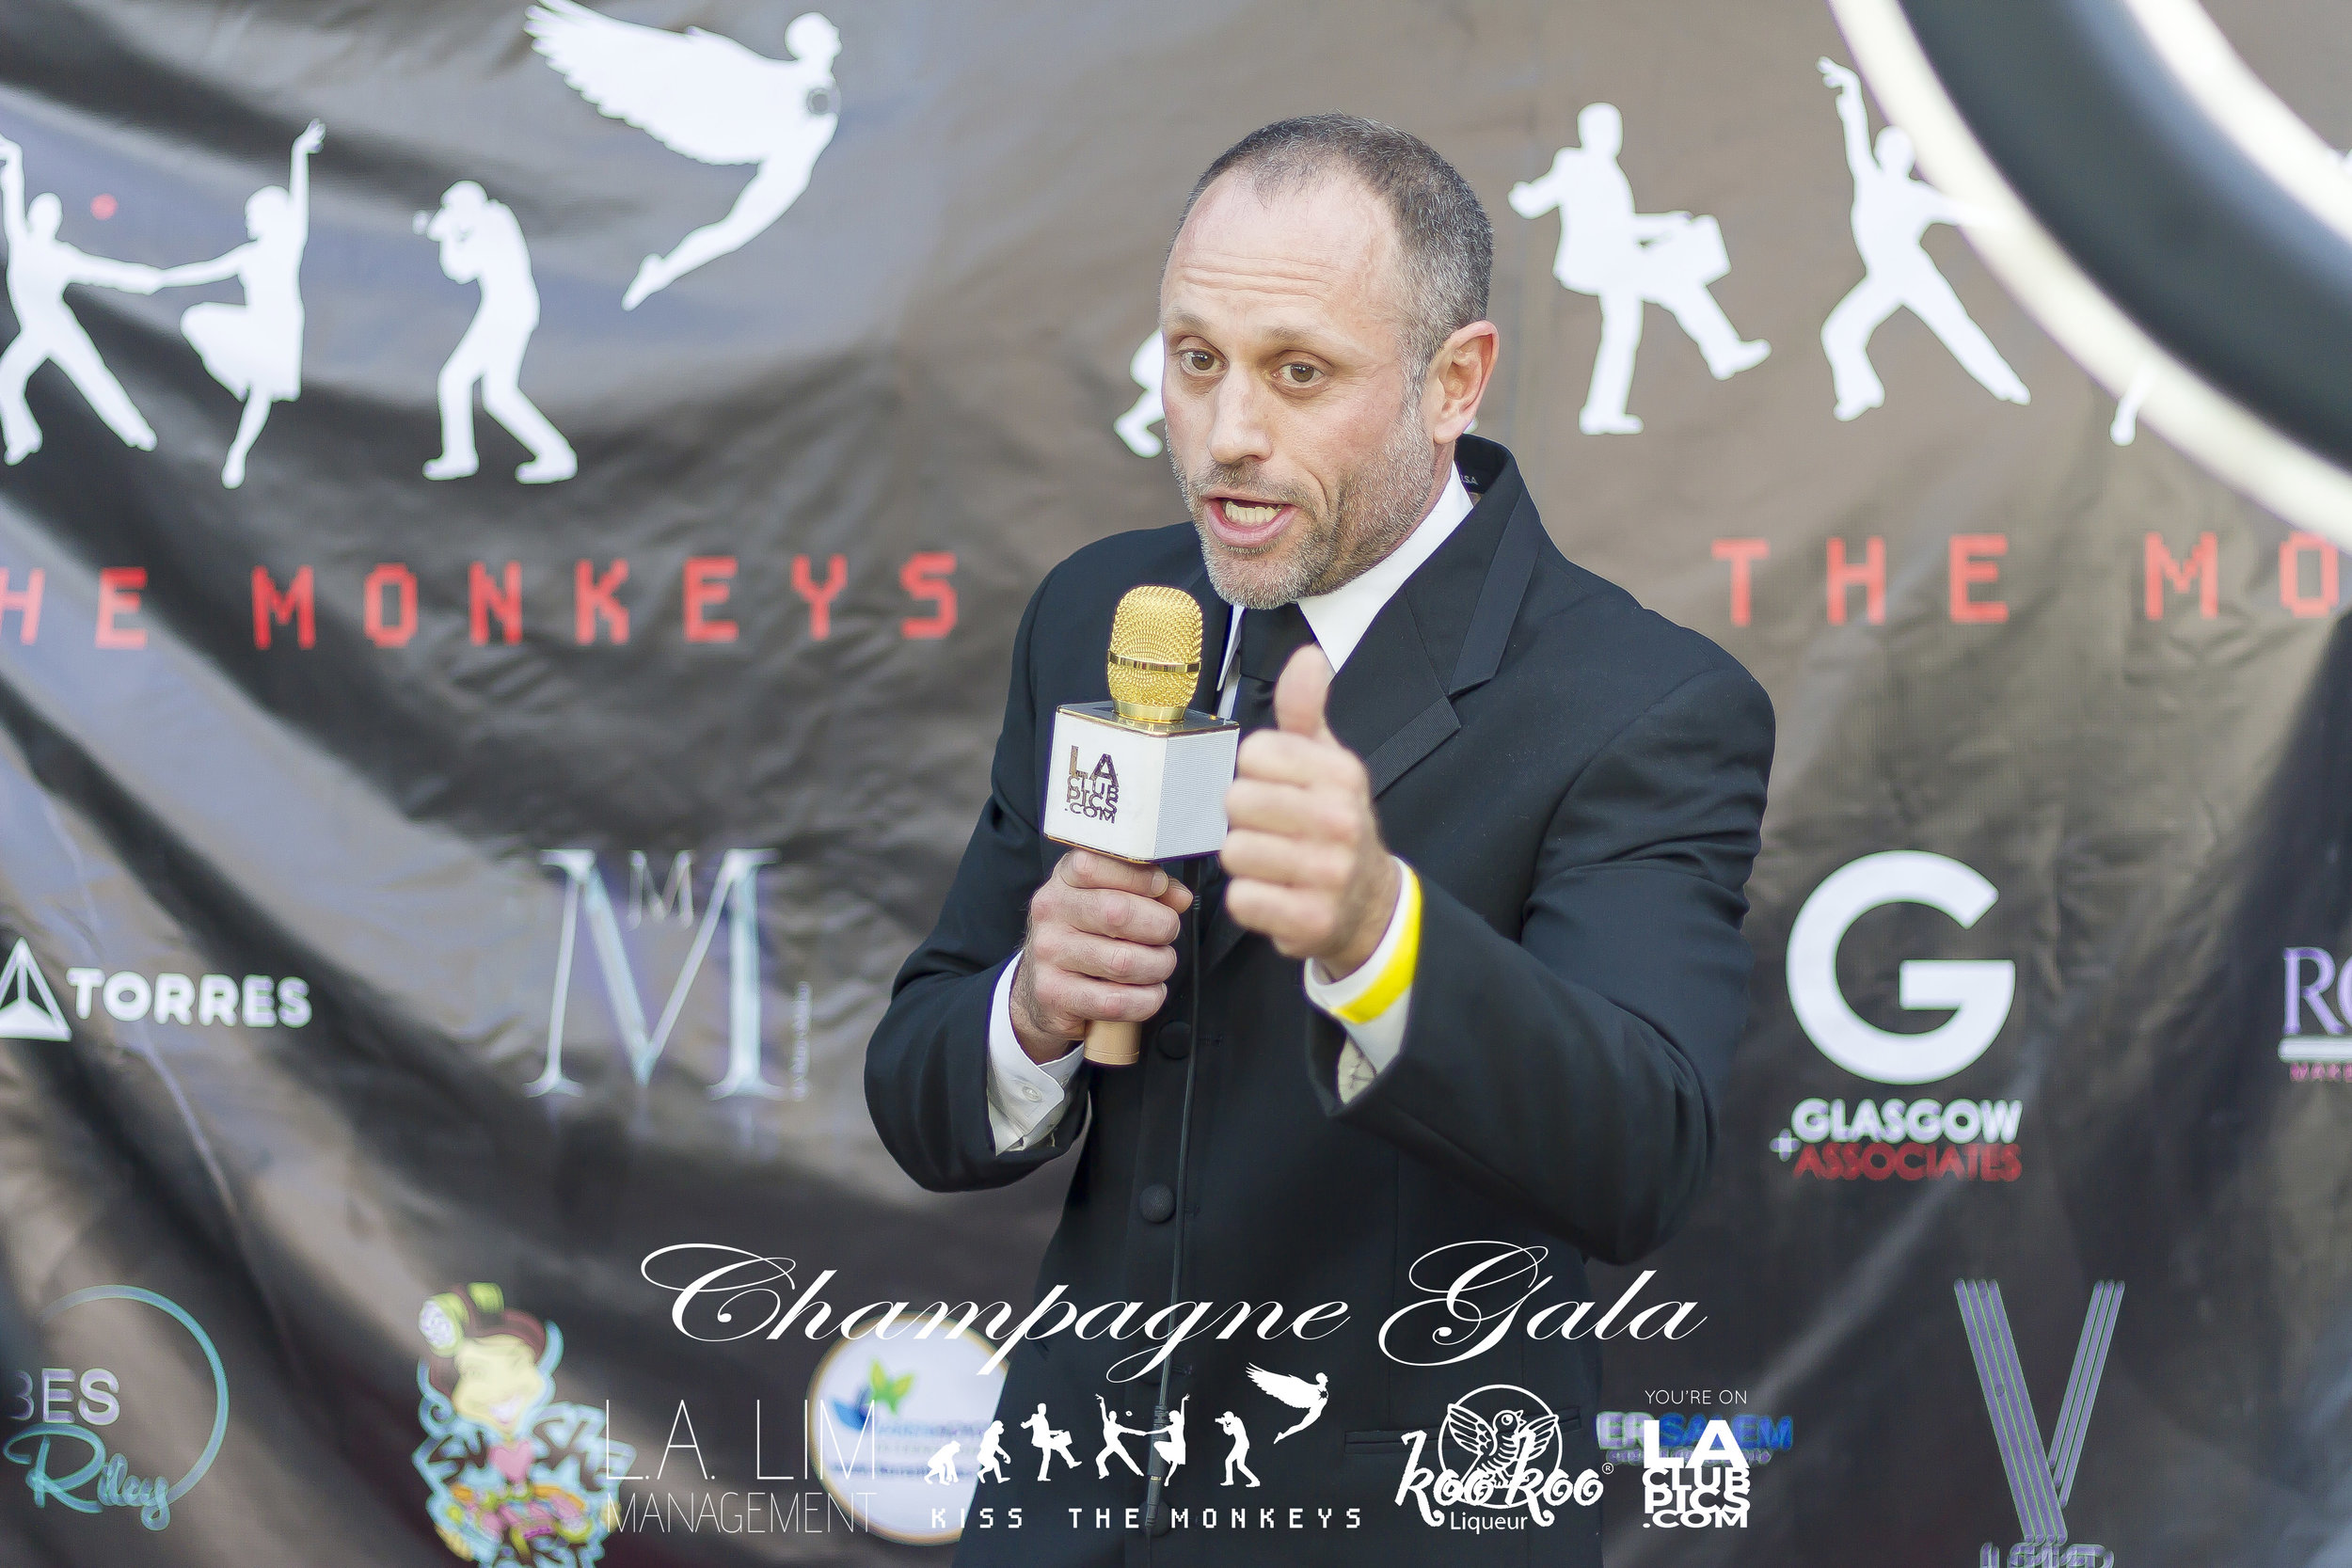 Kiss The Monkeys - Champagne Gala - 07-21-18_176.jpg